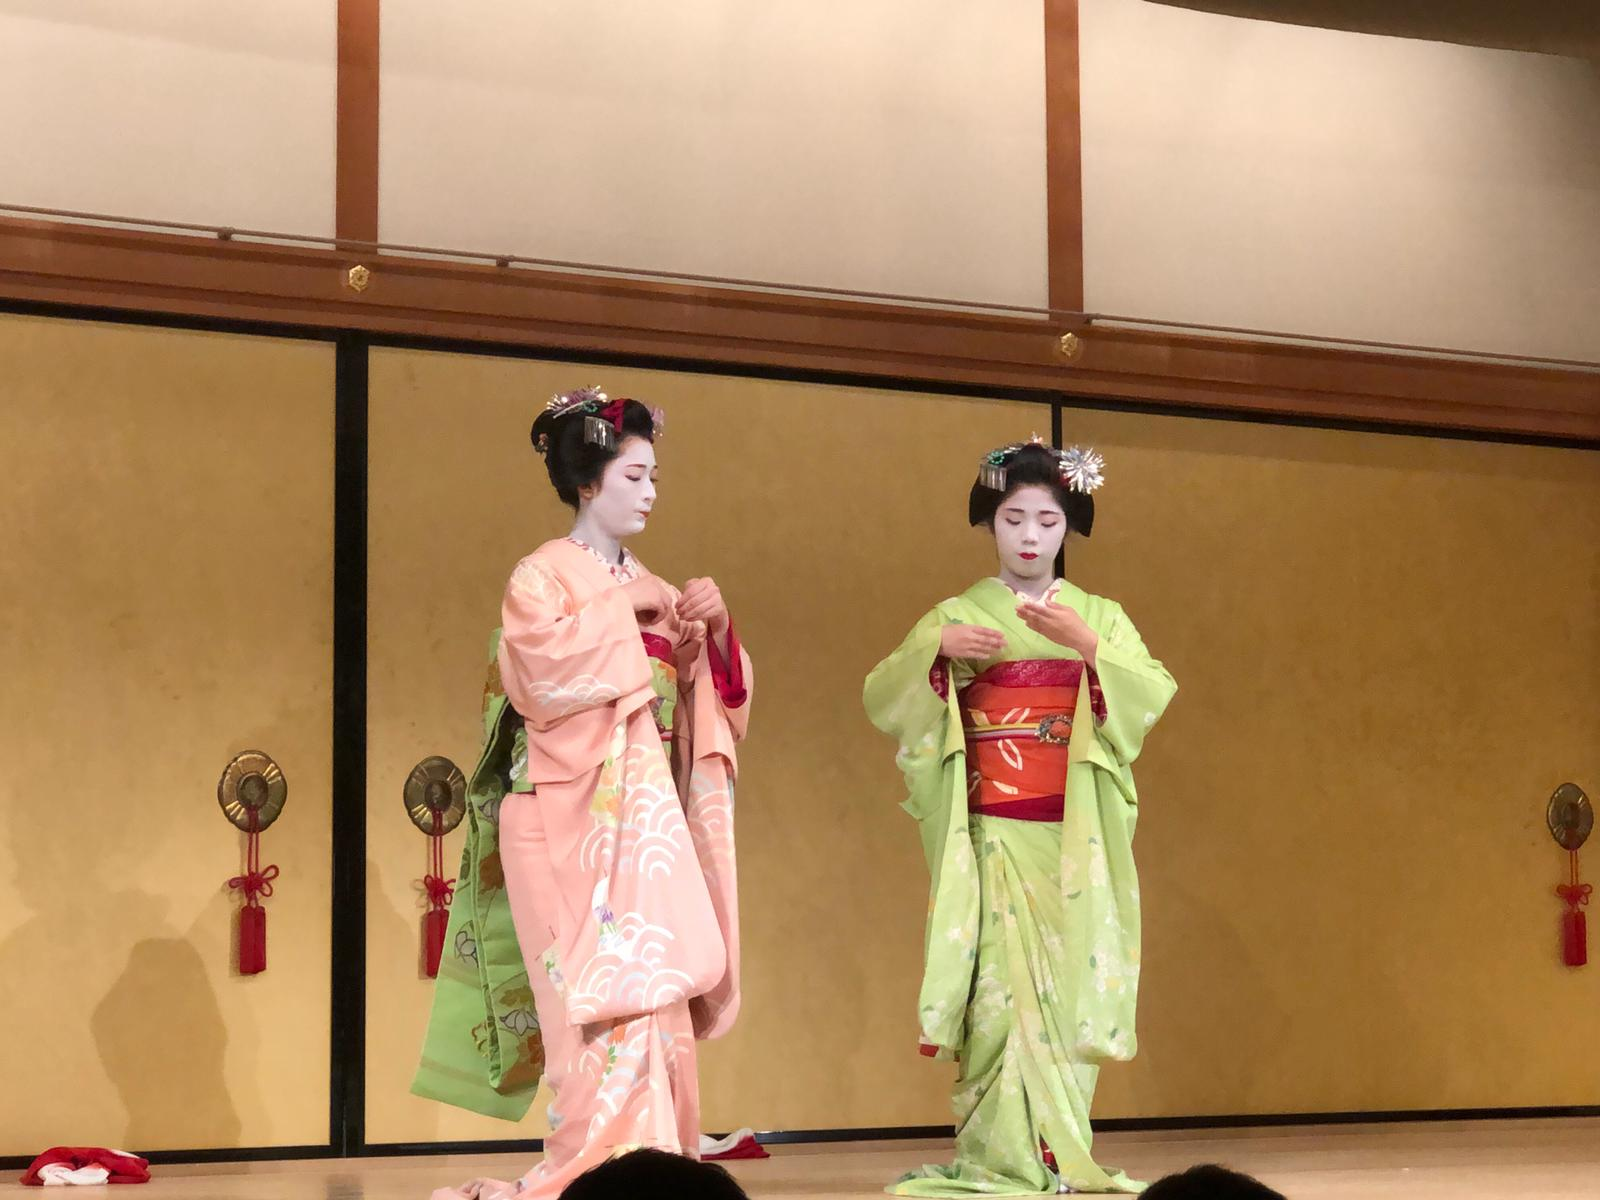 Two geishas performing.